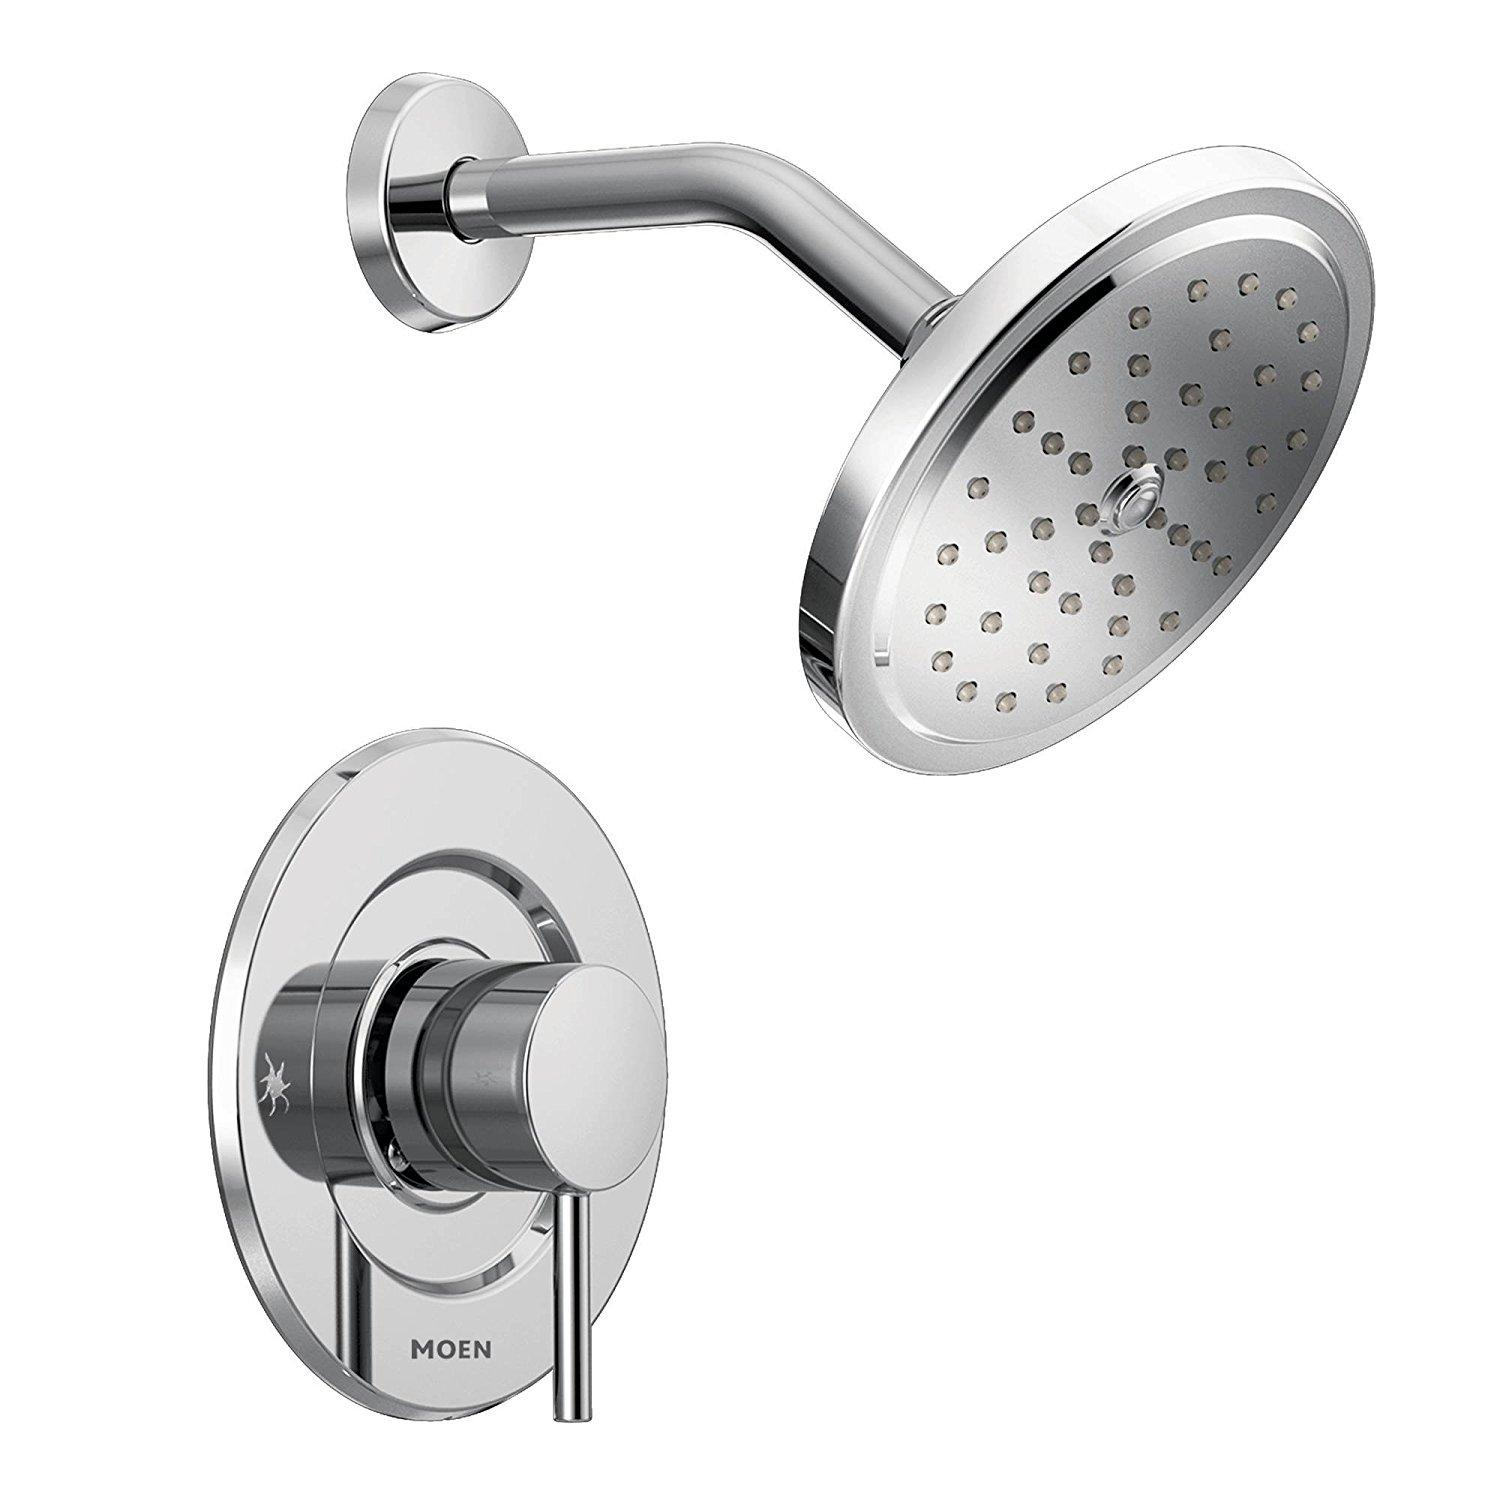 included shower and larger showerhead chrome handle moen watersense view bayhill multi function valve sets ca faucet tub with